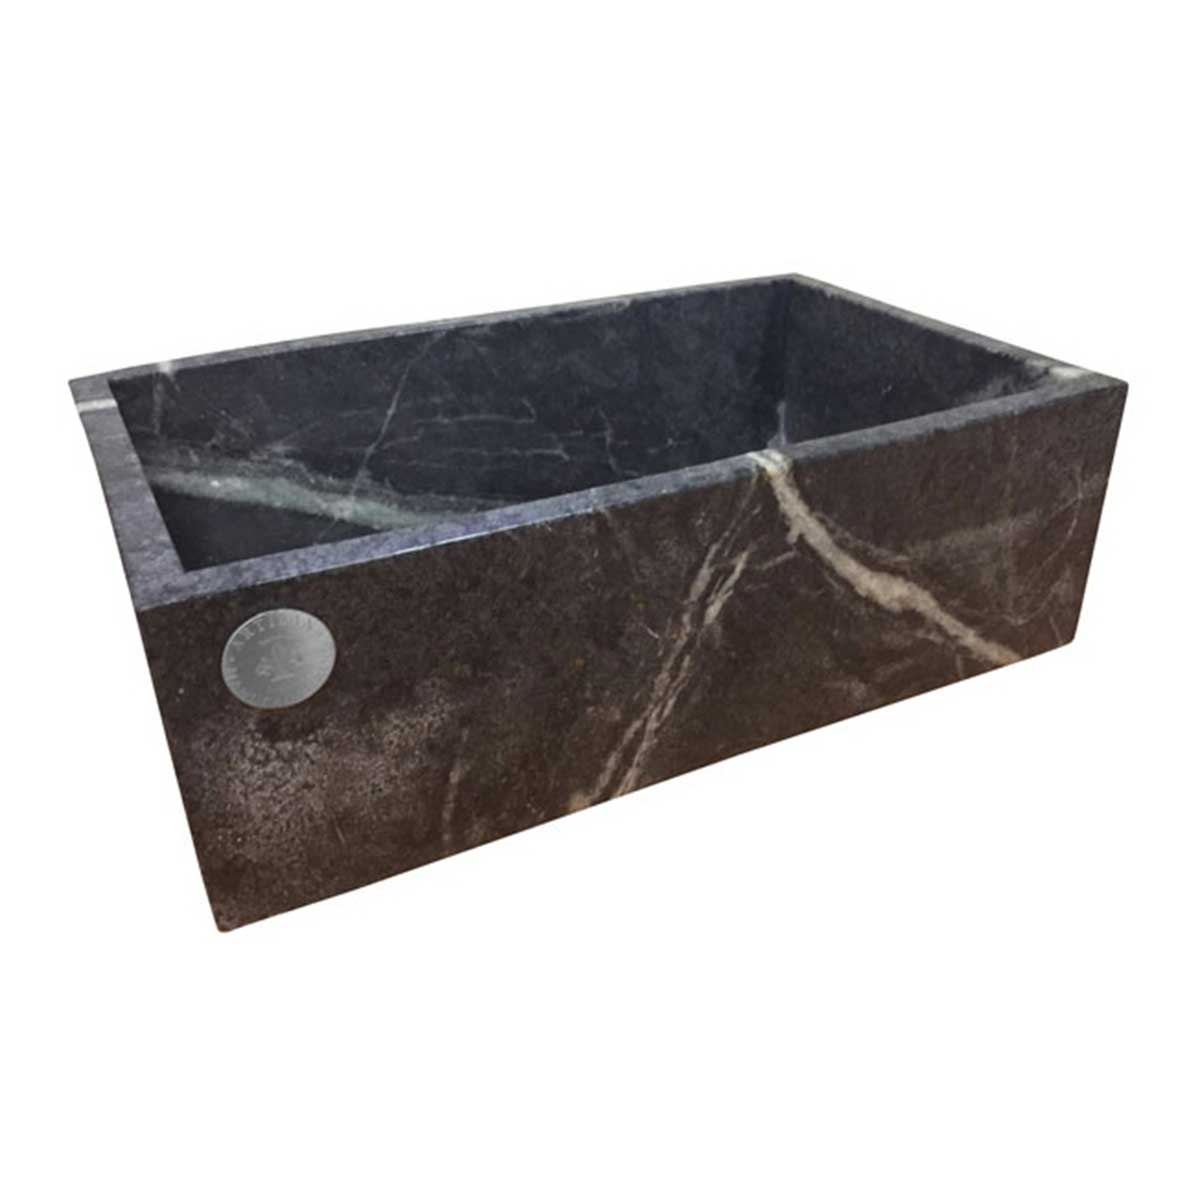 Soap-3018 Artisan Handcrafted Sinks